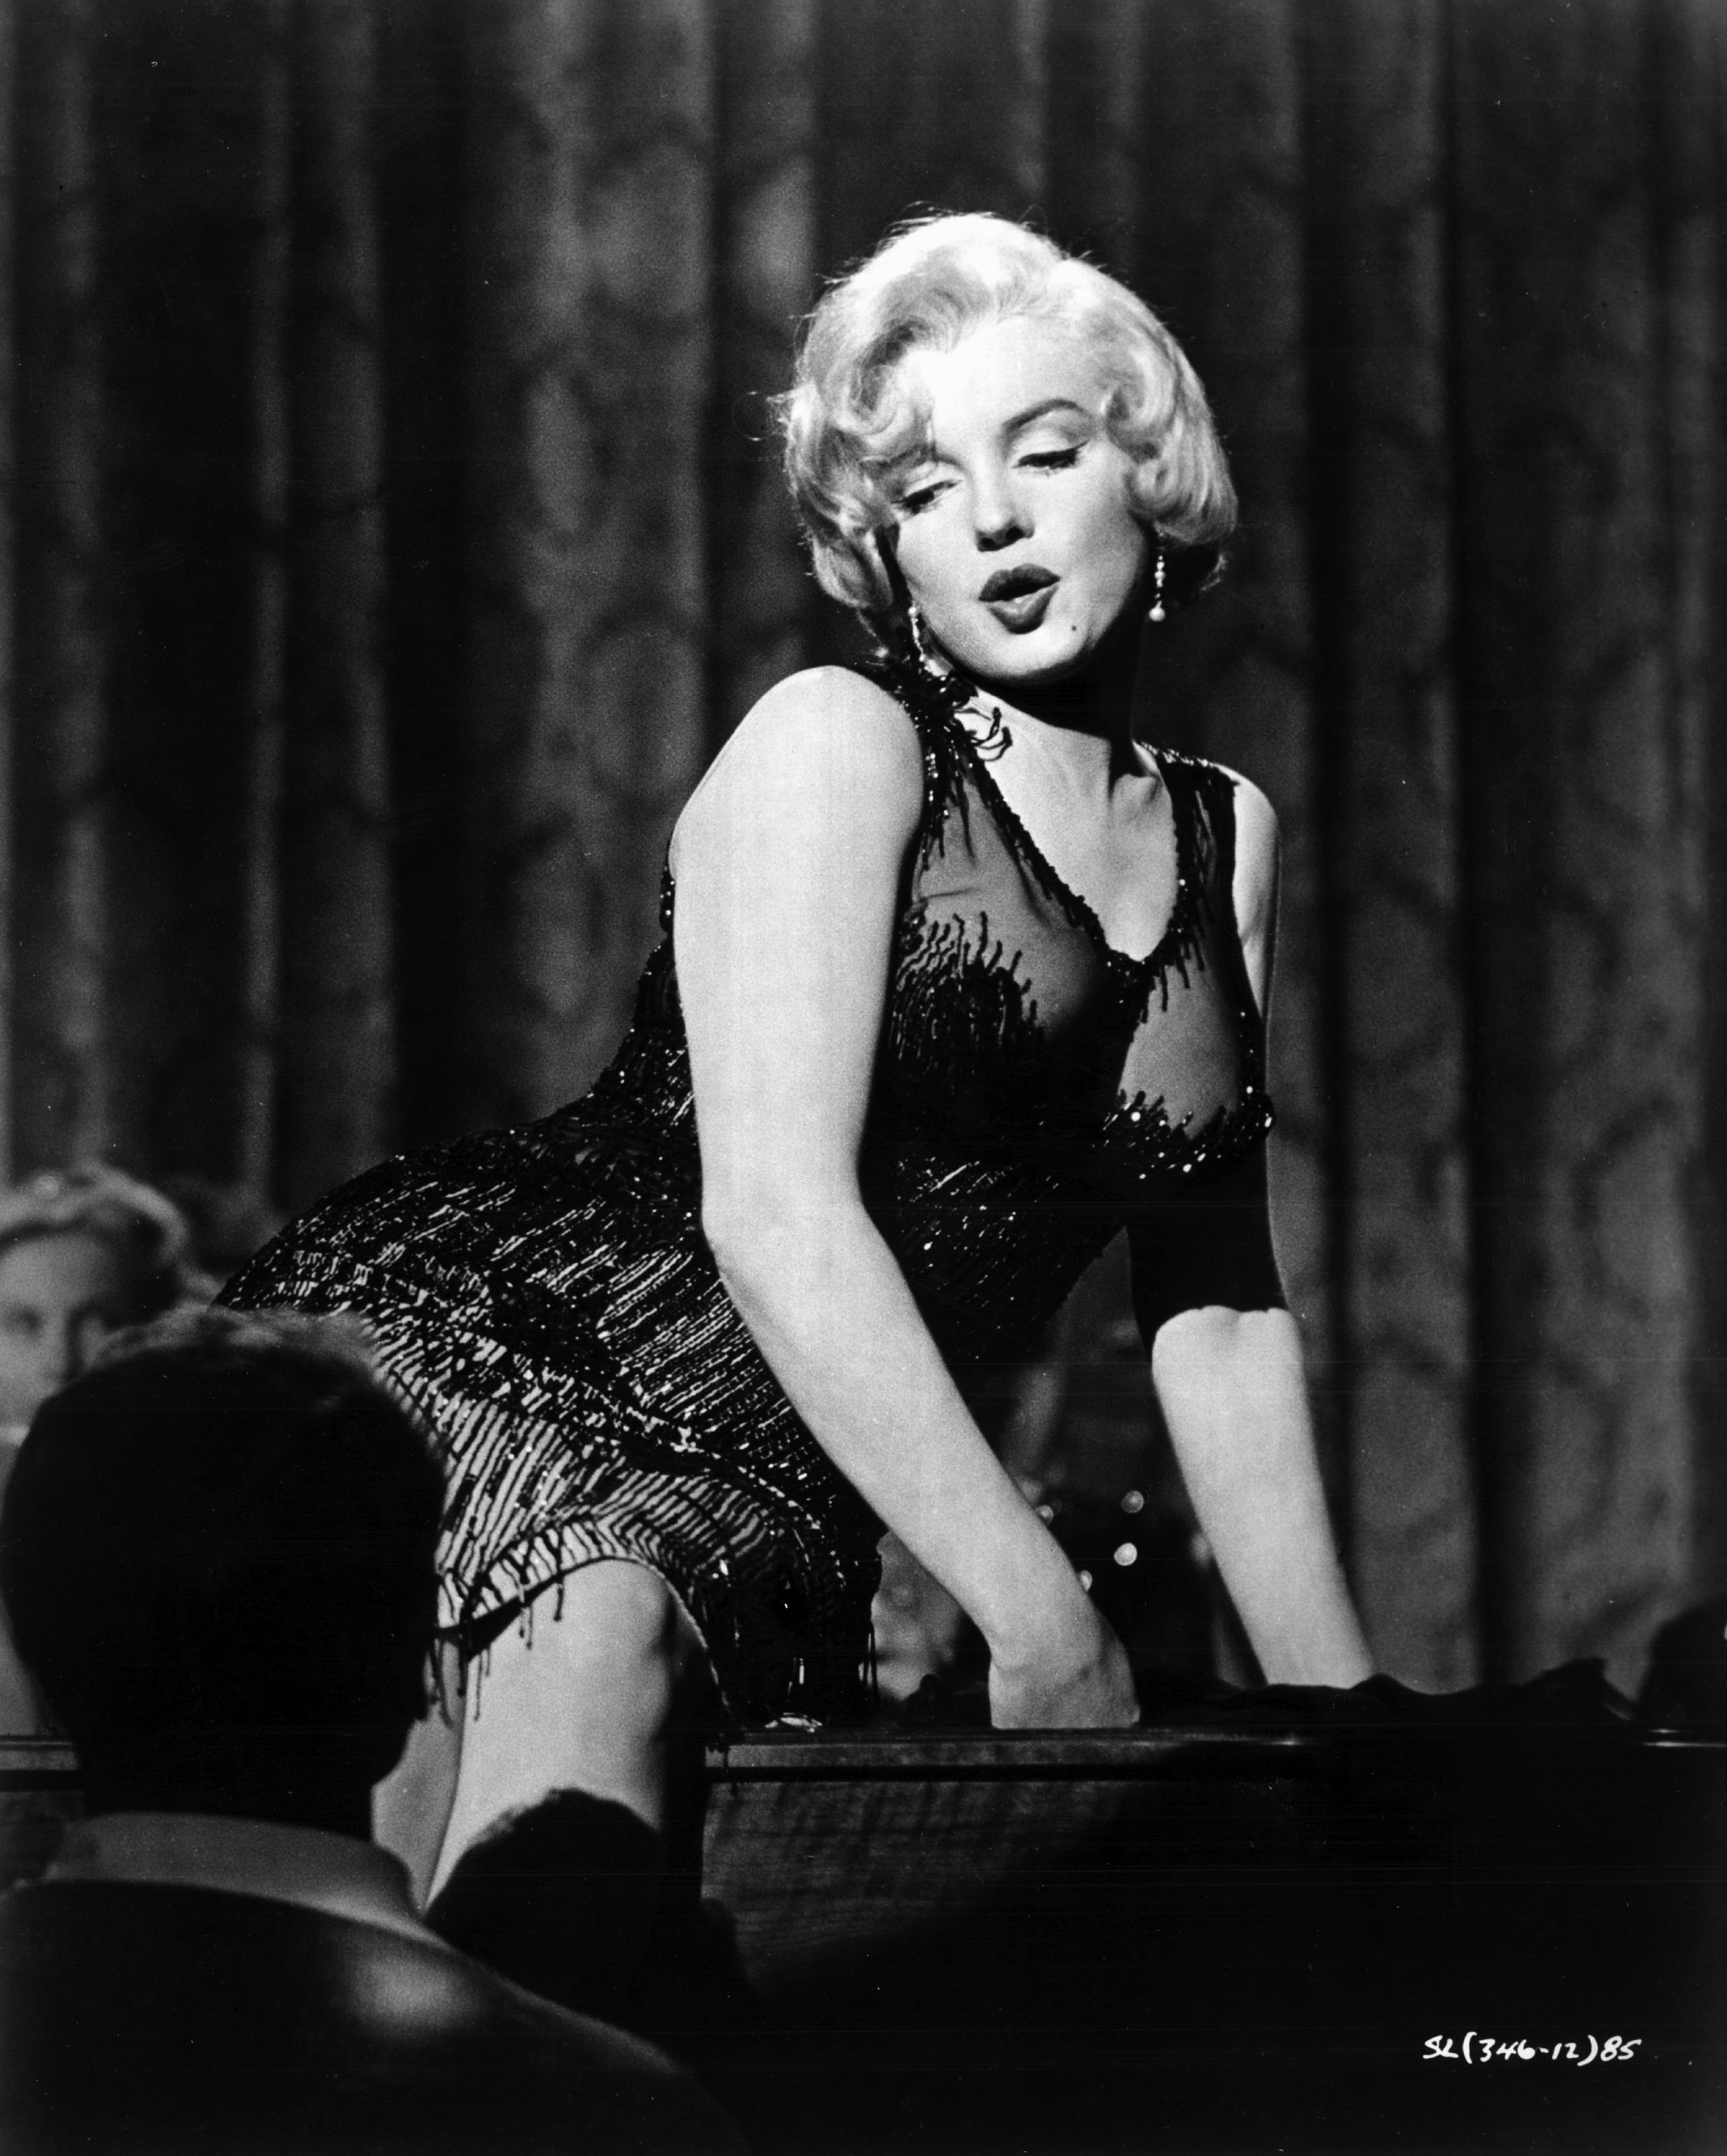 film noir some like it hot 1959 noirwhale